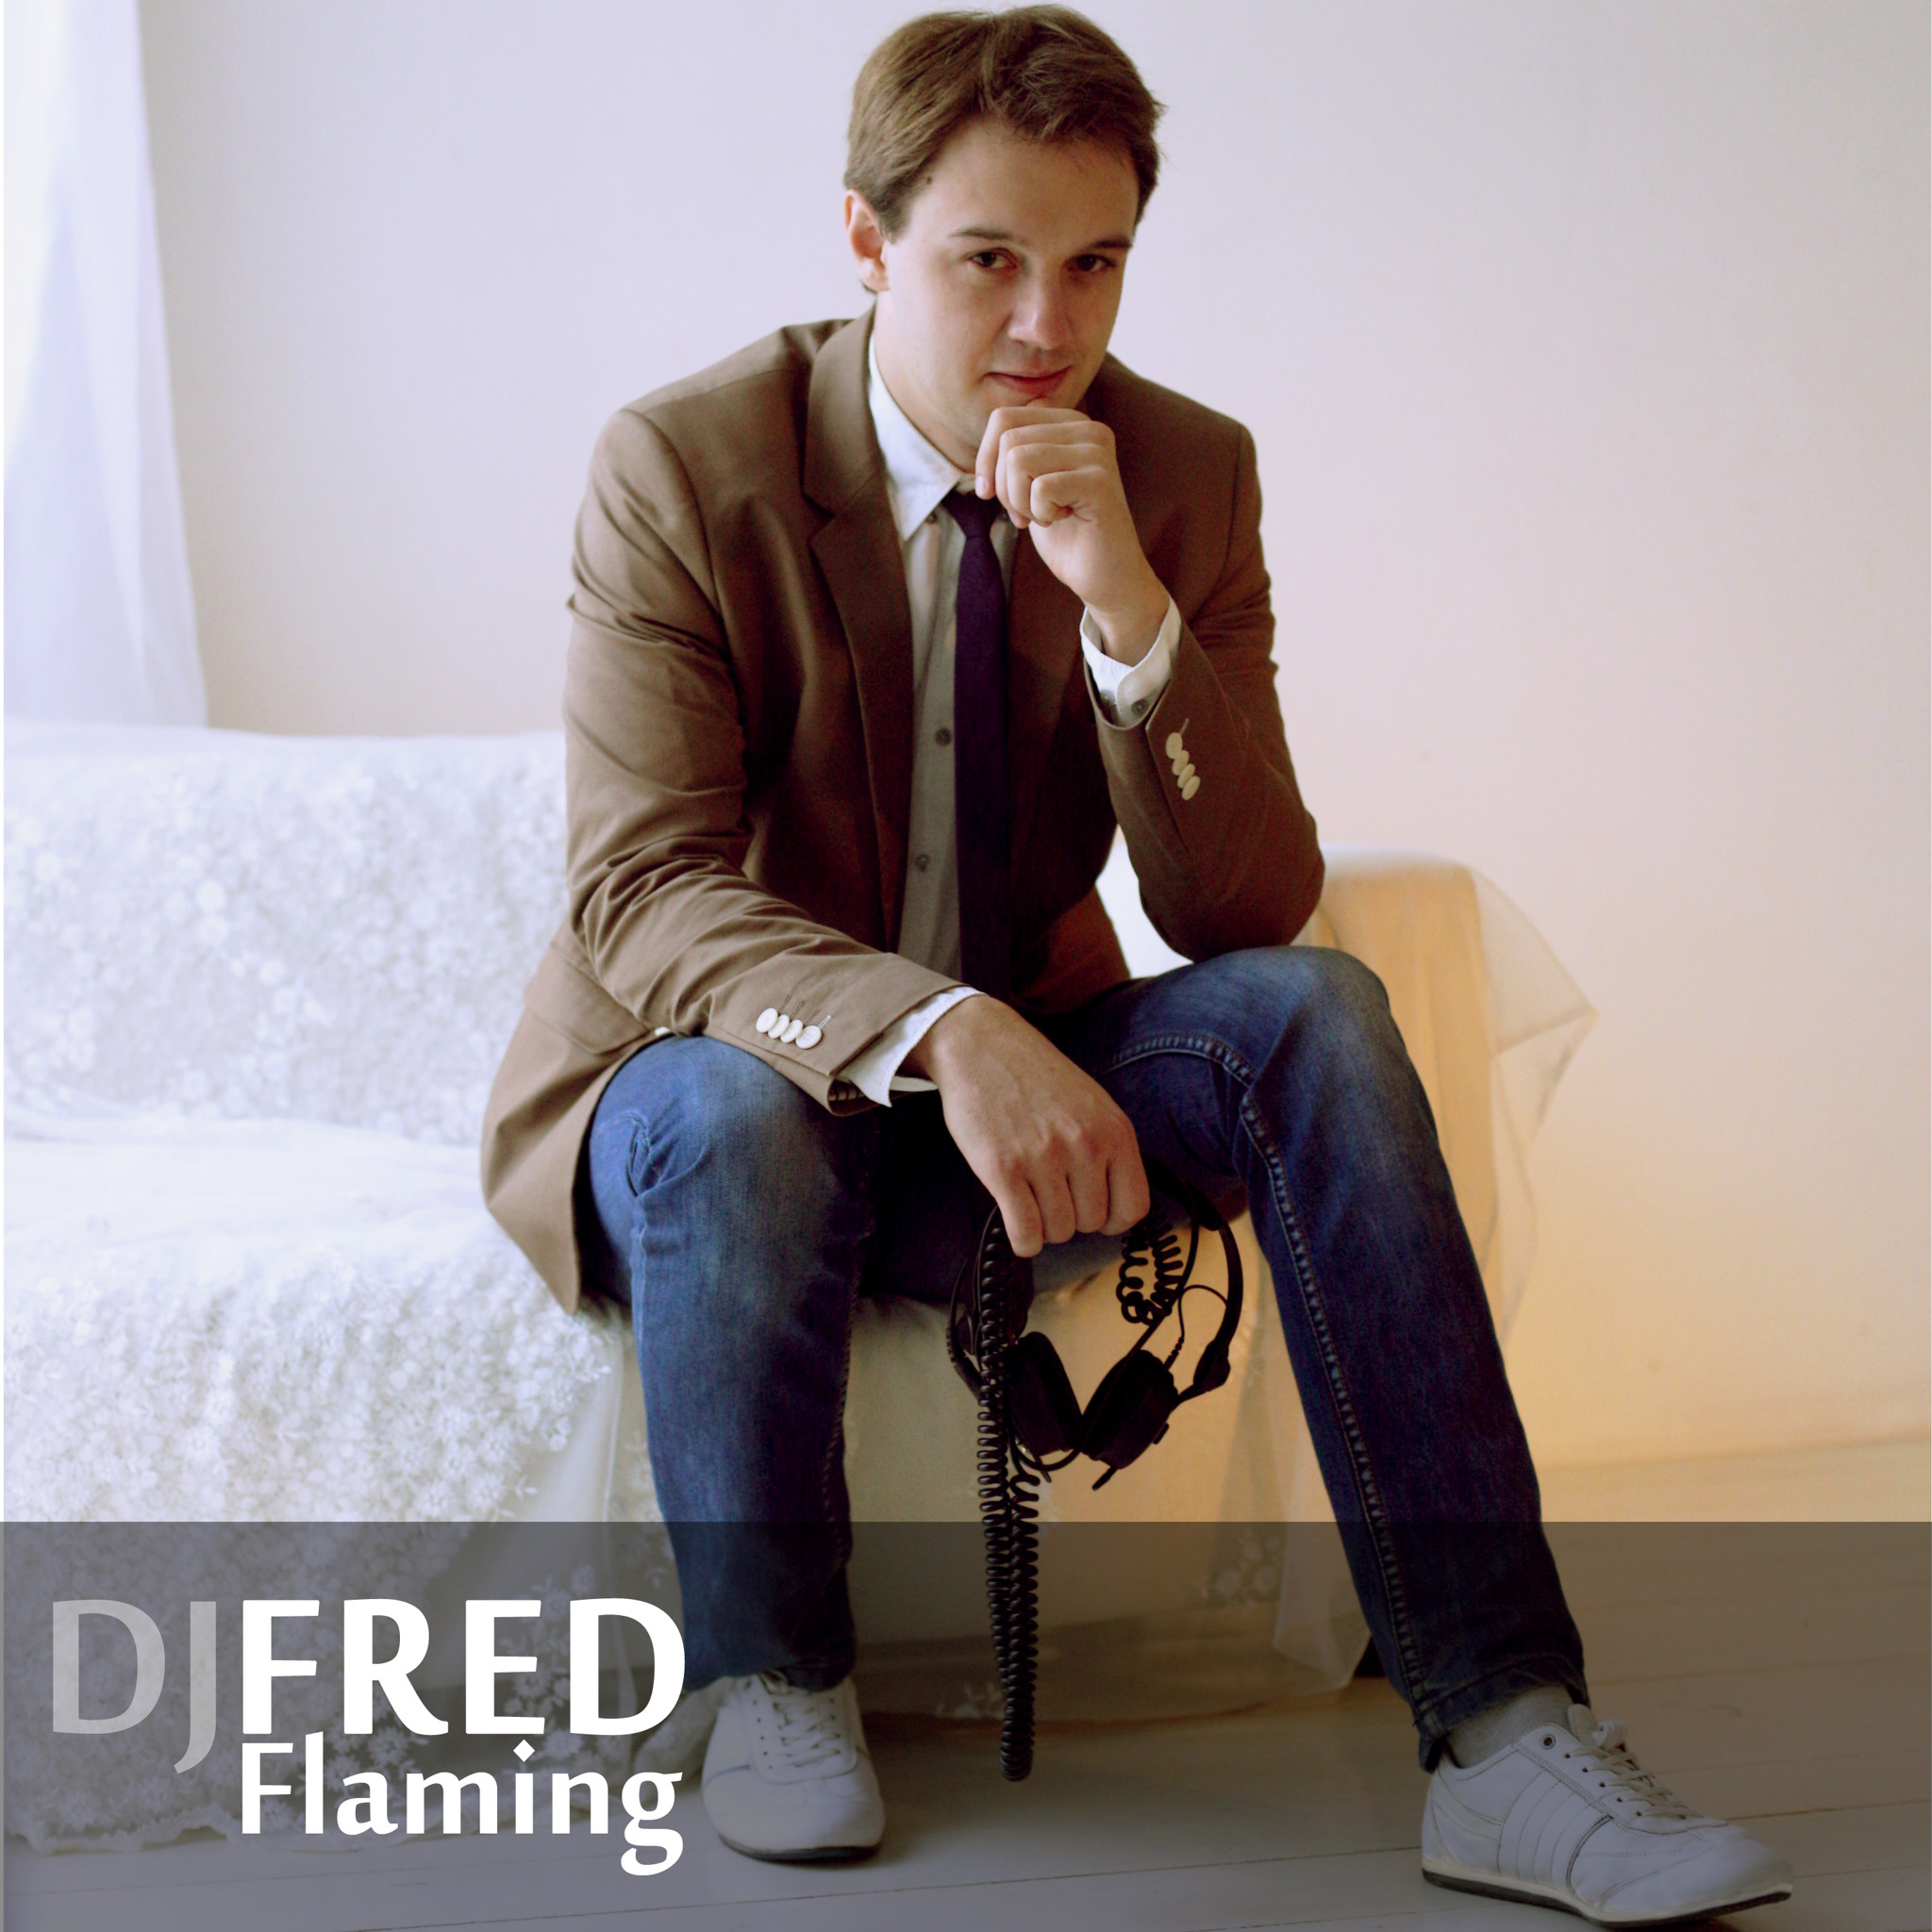 Fred Flaming